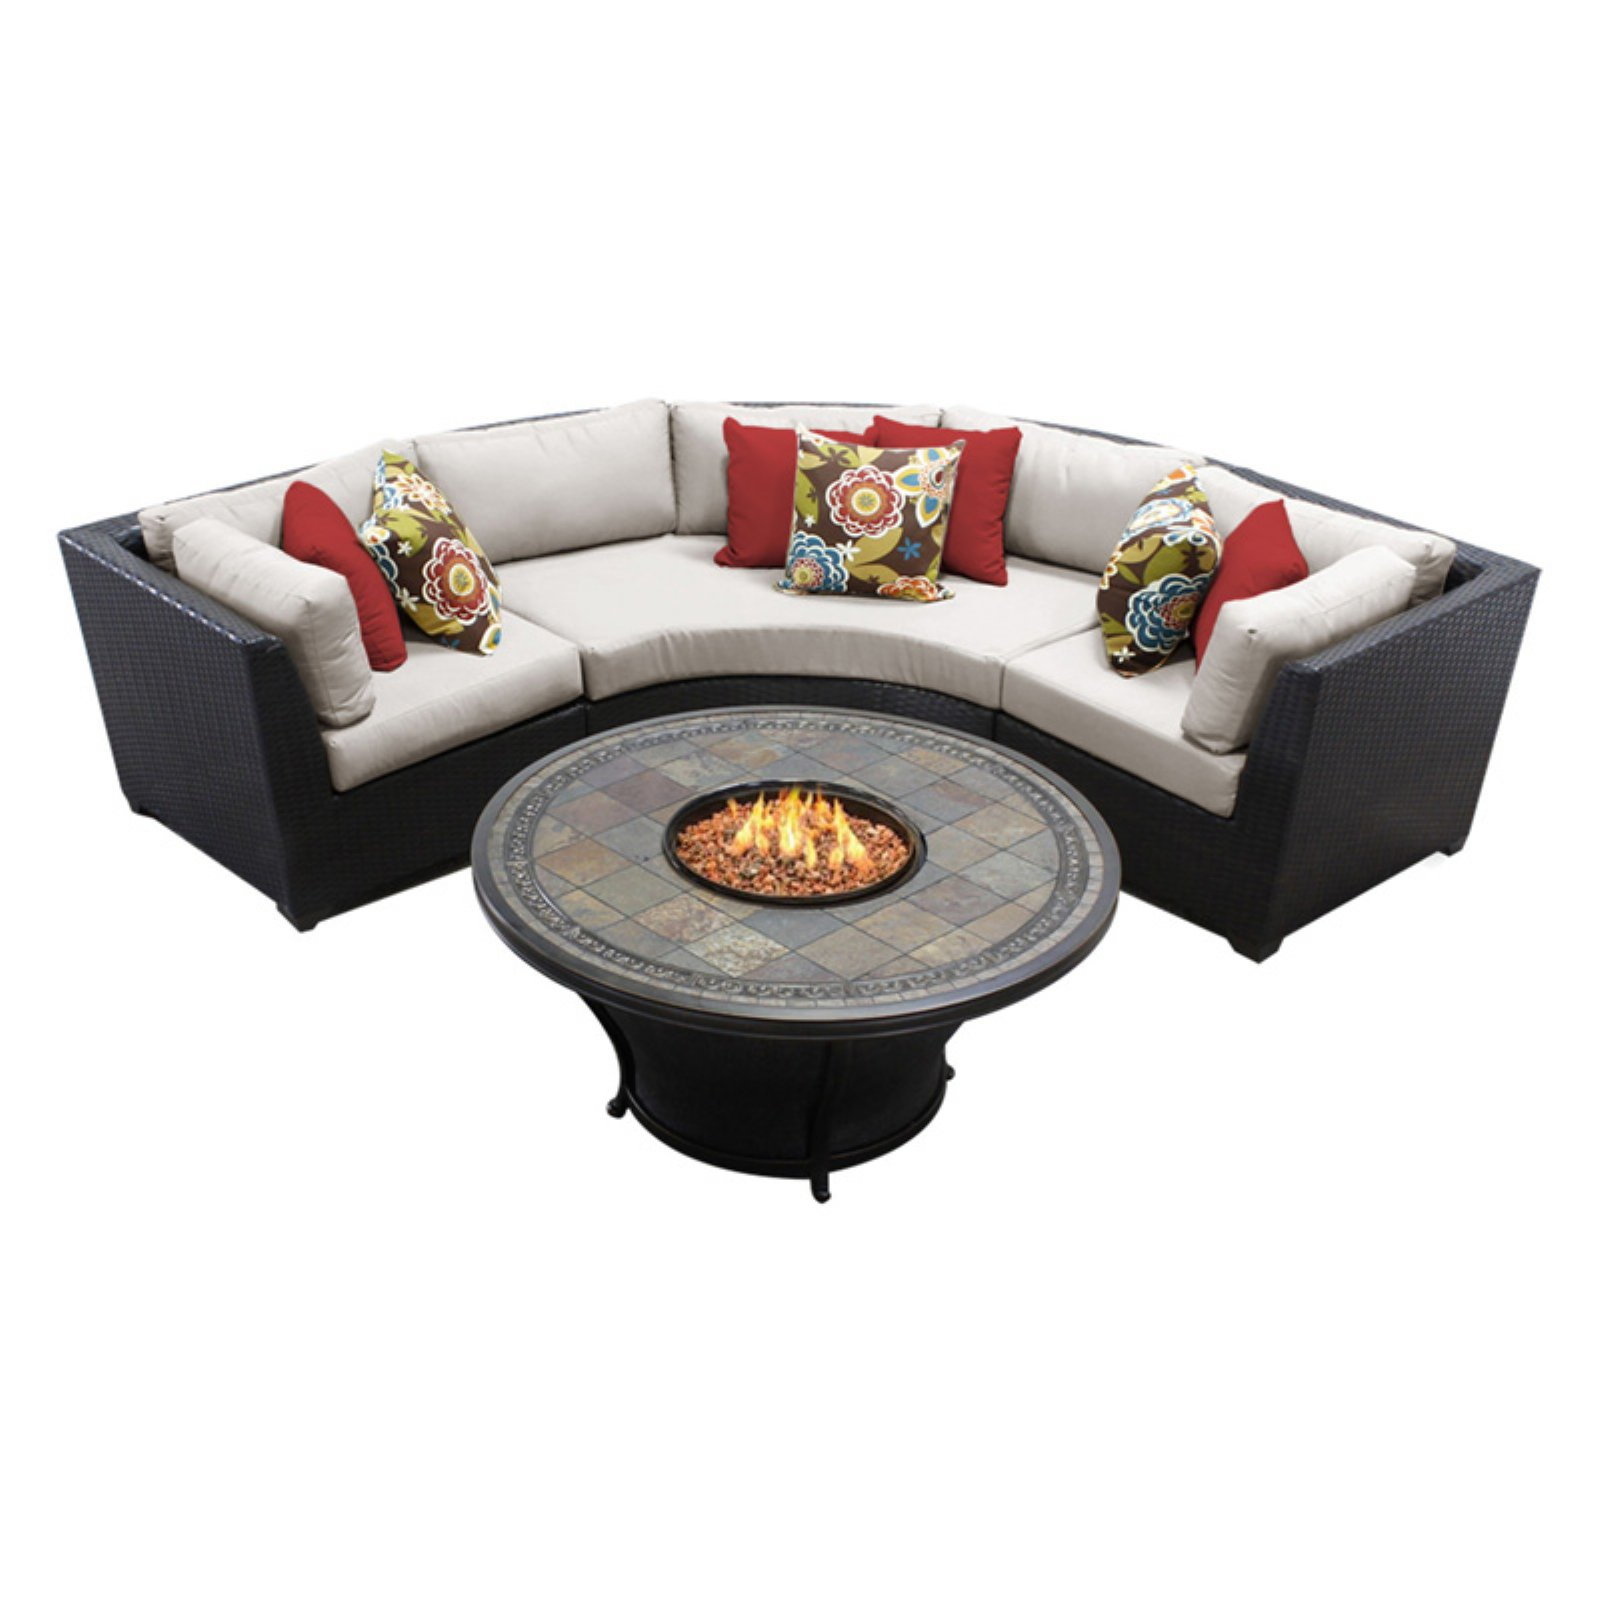 TK Classics Barbados Wicker 4 Piece Patio Conversation Set with Fire Pit Table and 2 Sets of Cushion Covers